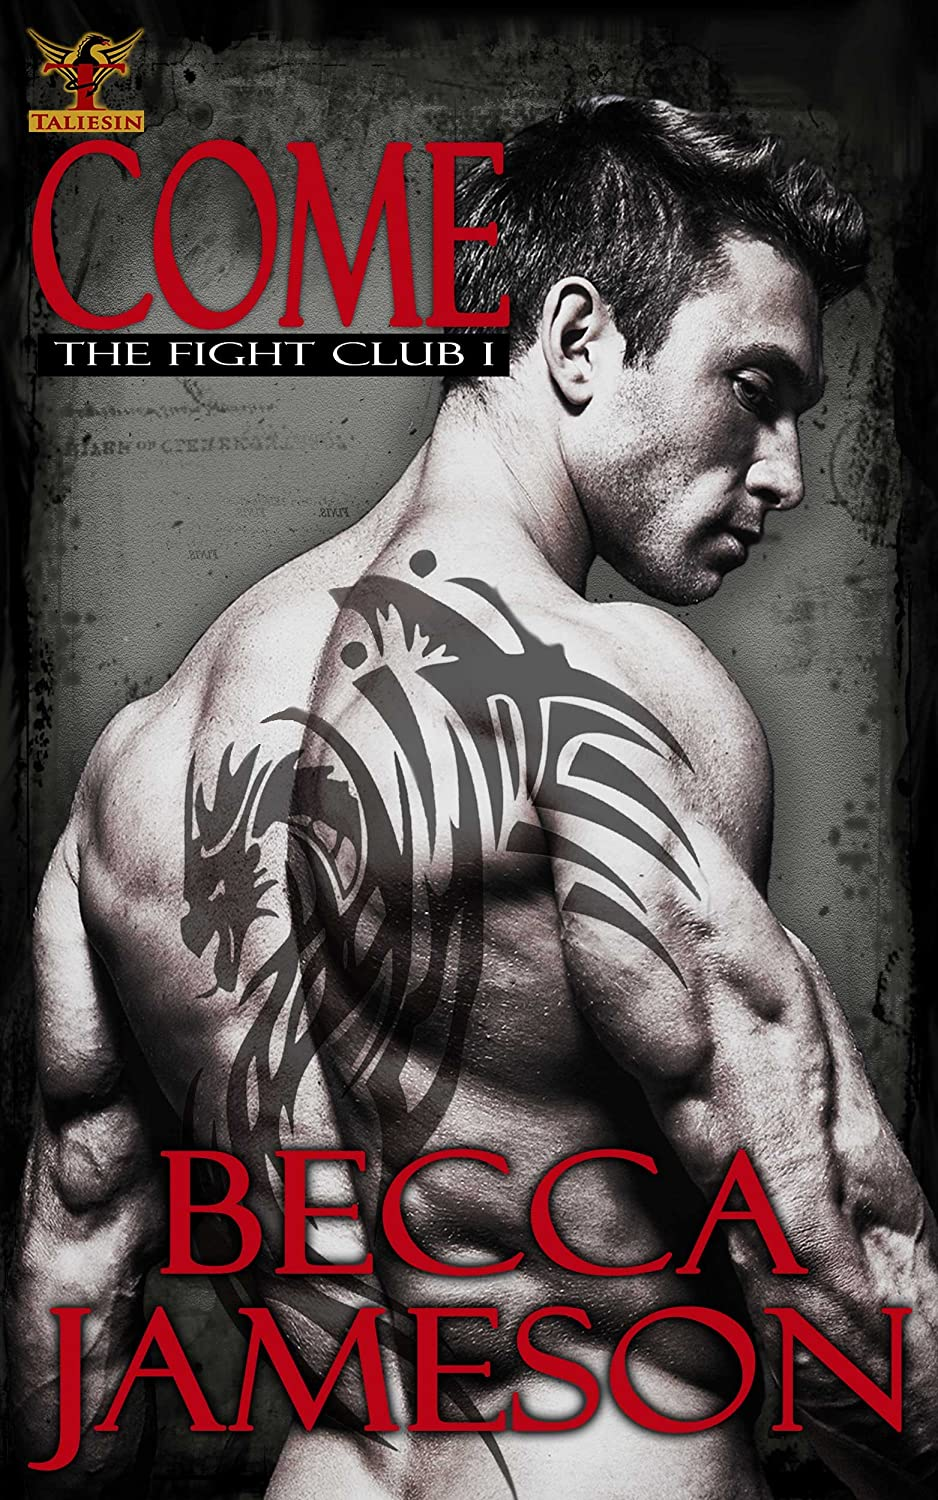 Come (The Fight Club Book 1) - Becca Jameson